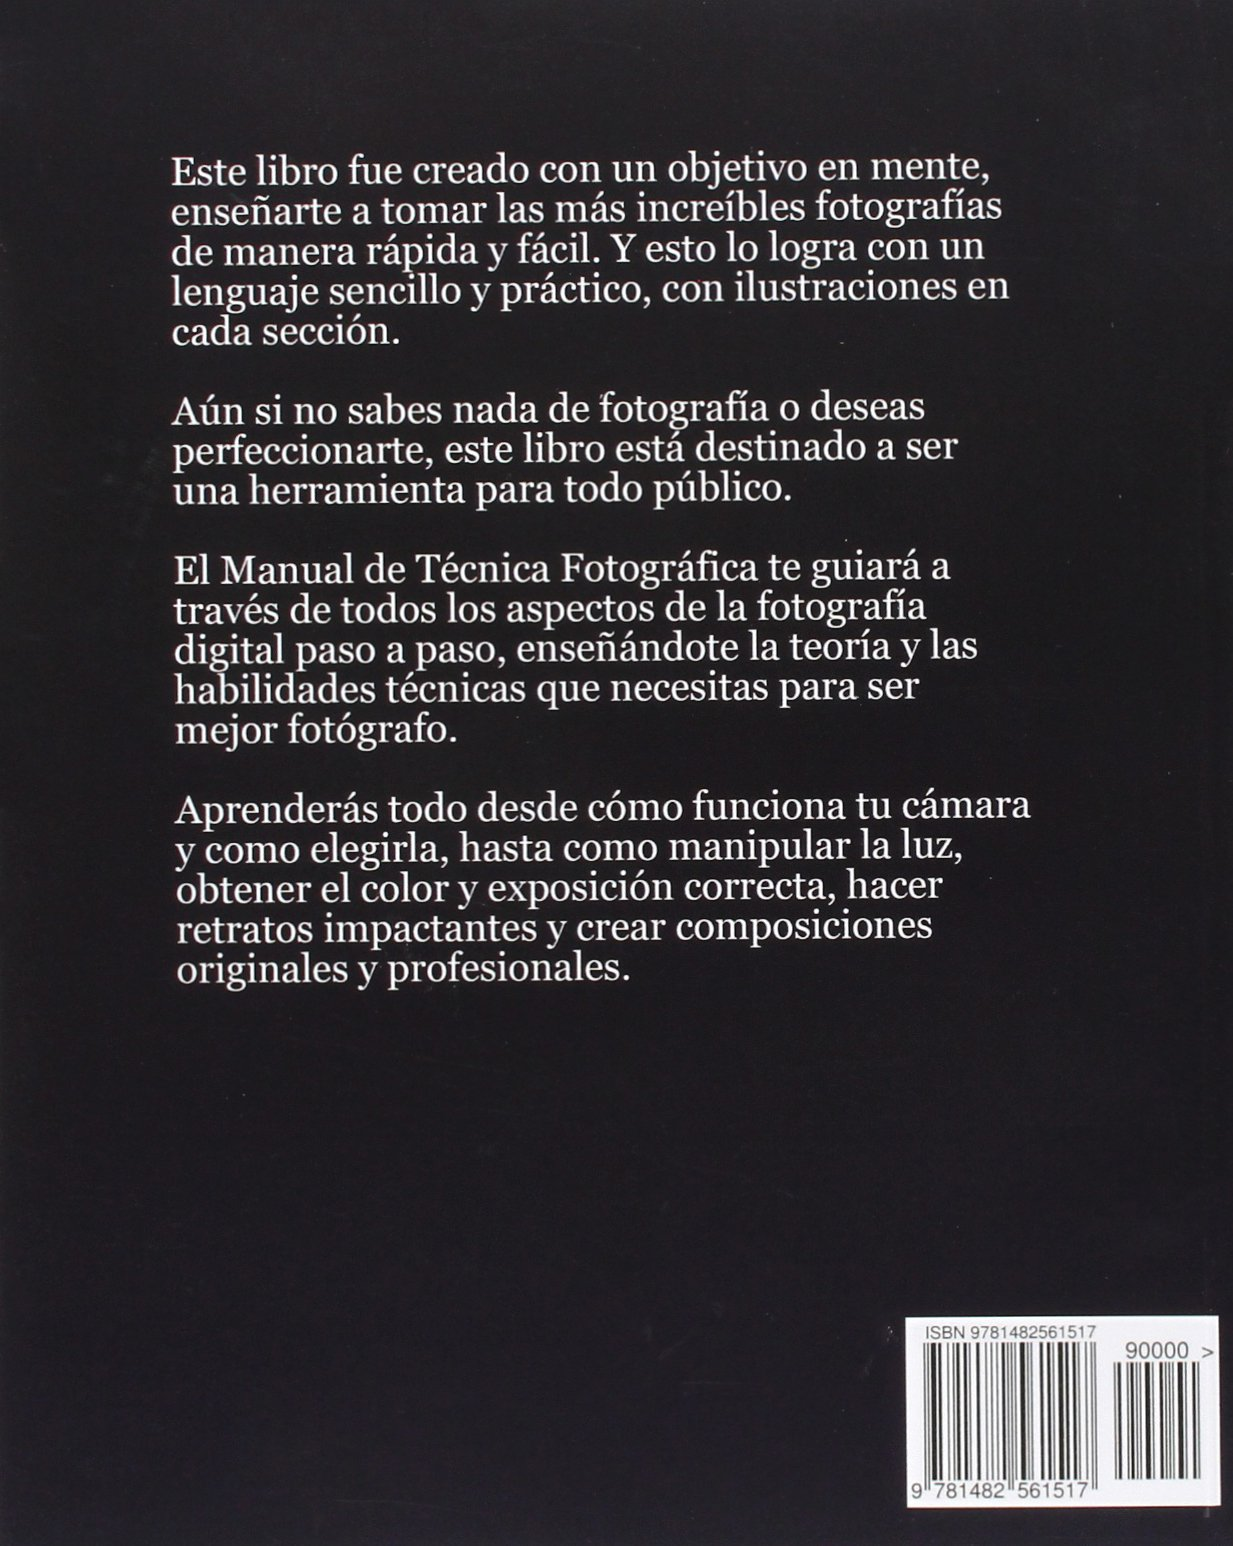 Manual de Técnica Fotográfica (Spanish Edition): Juan Ignacio Torres:  9781482561517: Amazon.com: Books